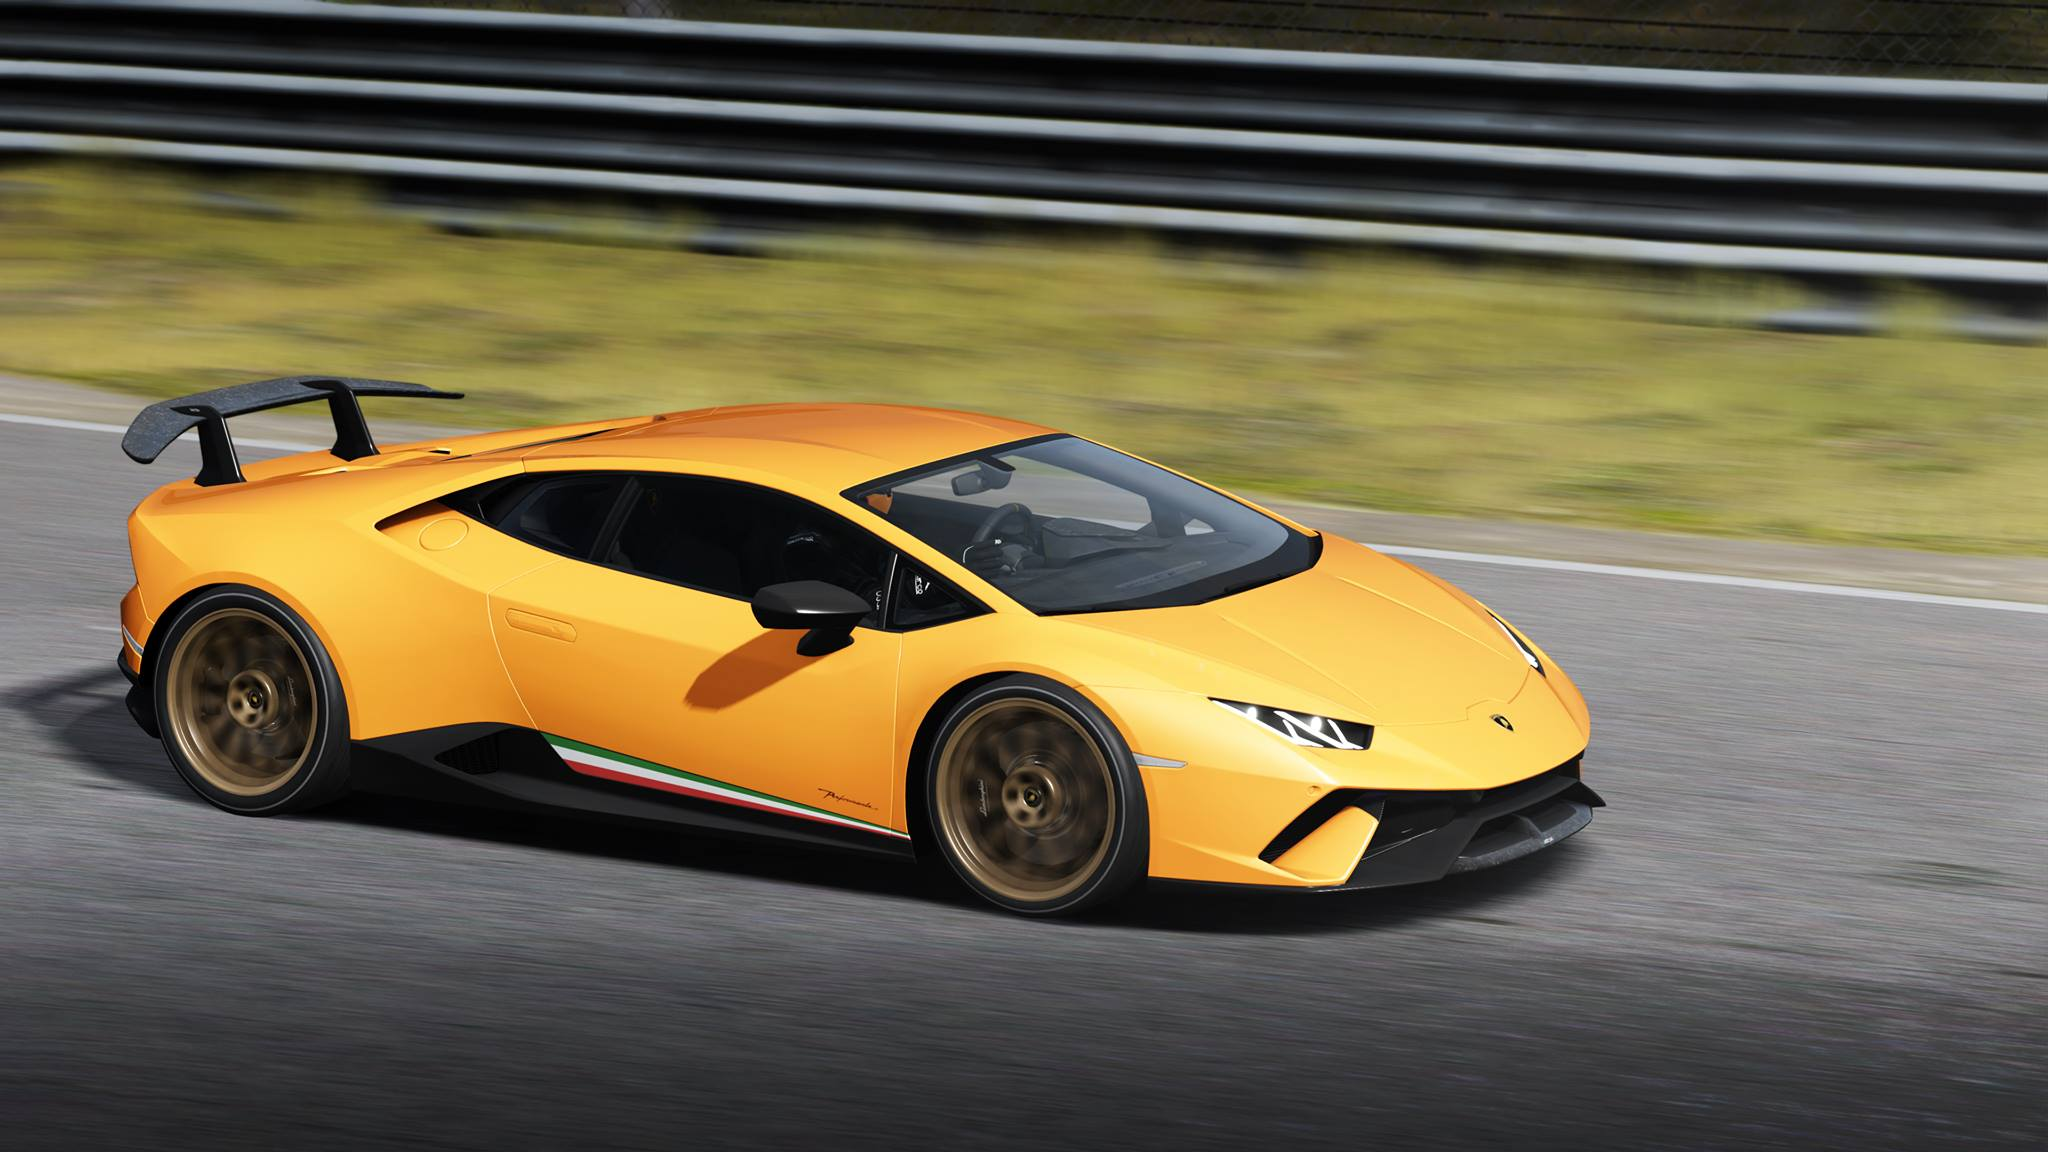 Huràcan Performante_3.jpg